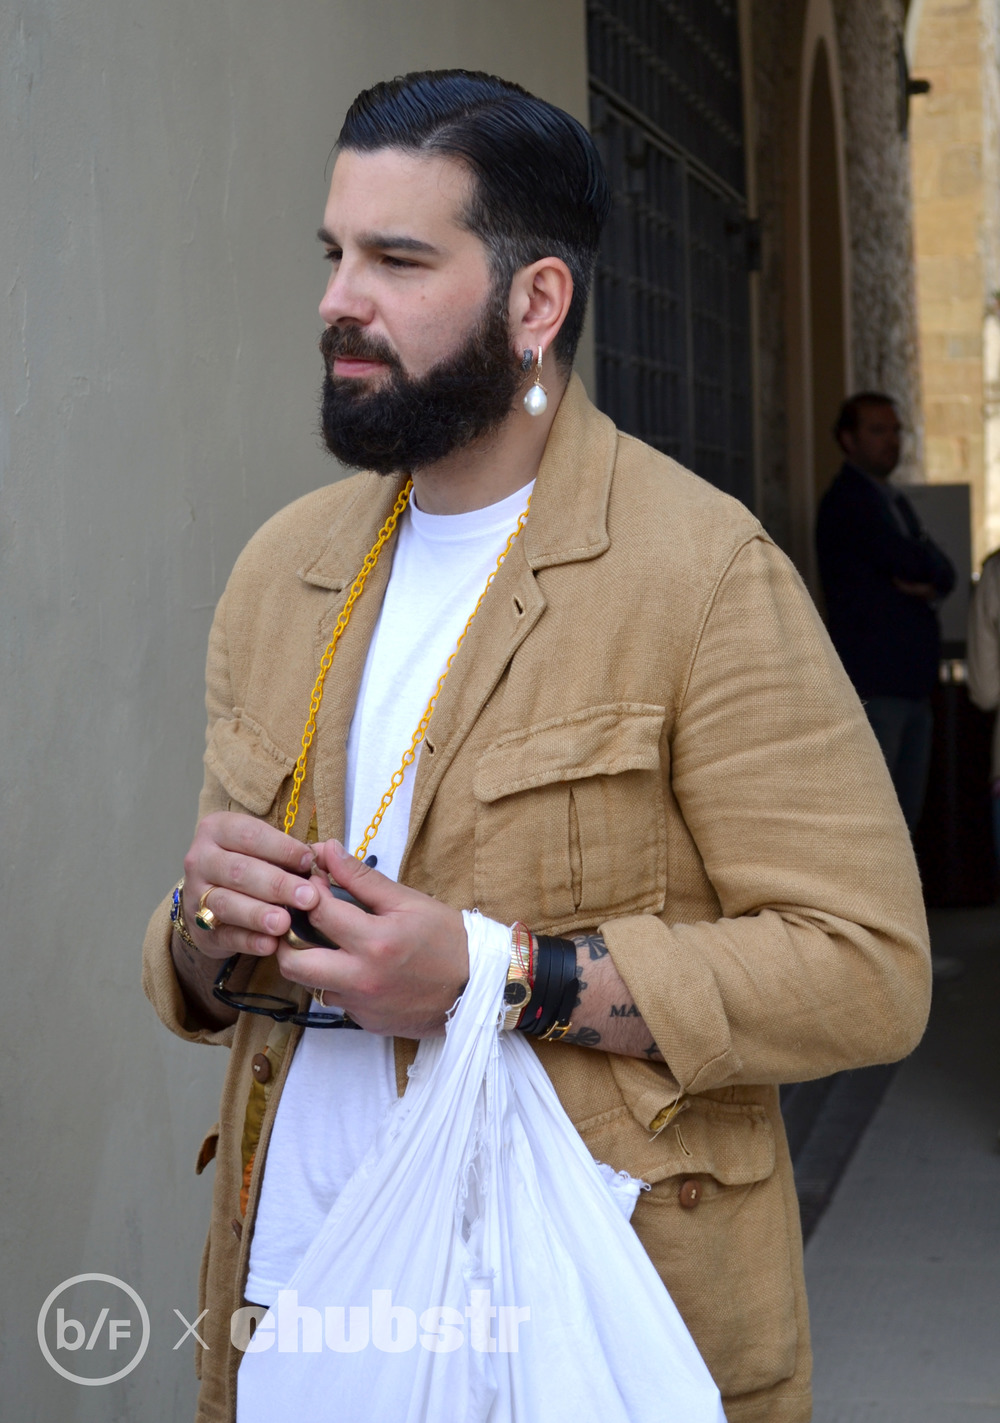 BF032_PittiUomo88_FB_3.jpg